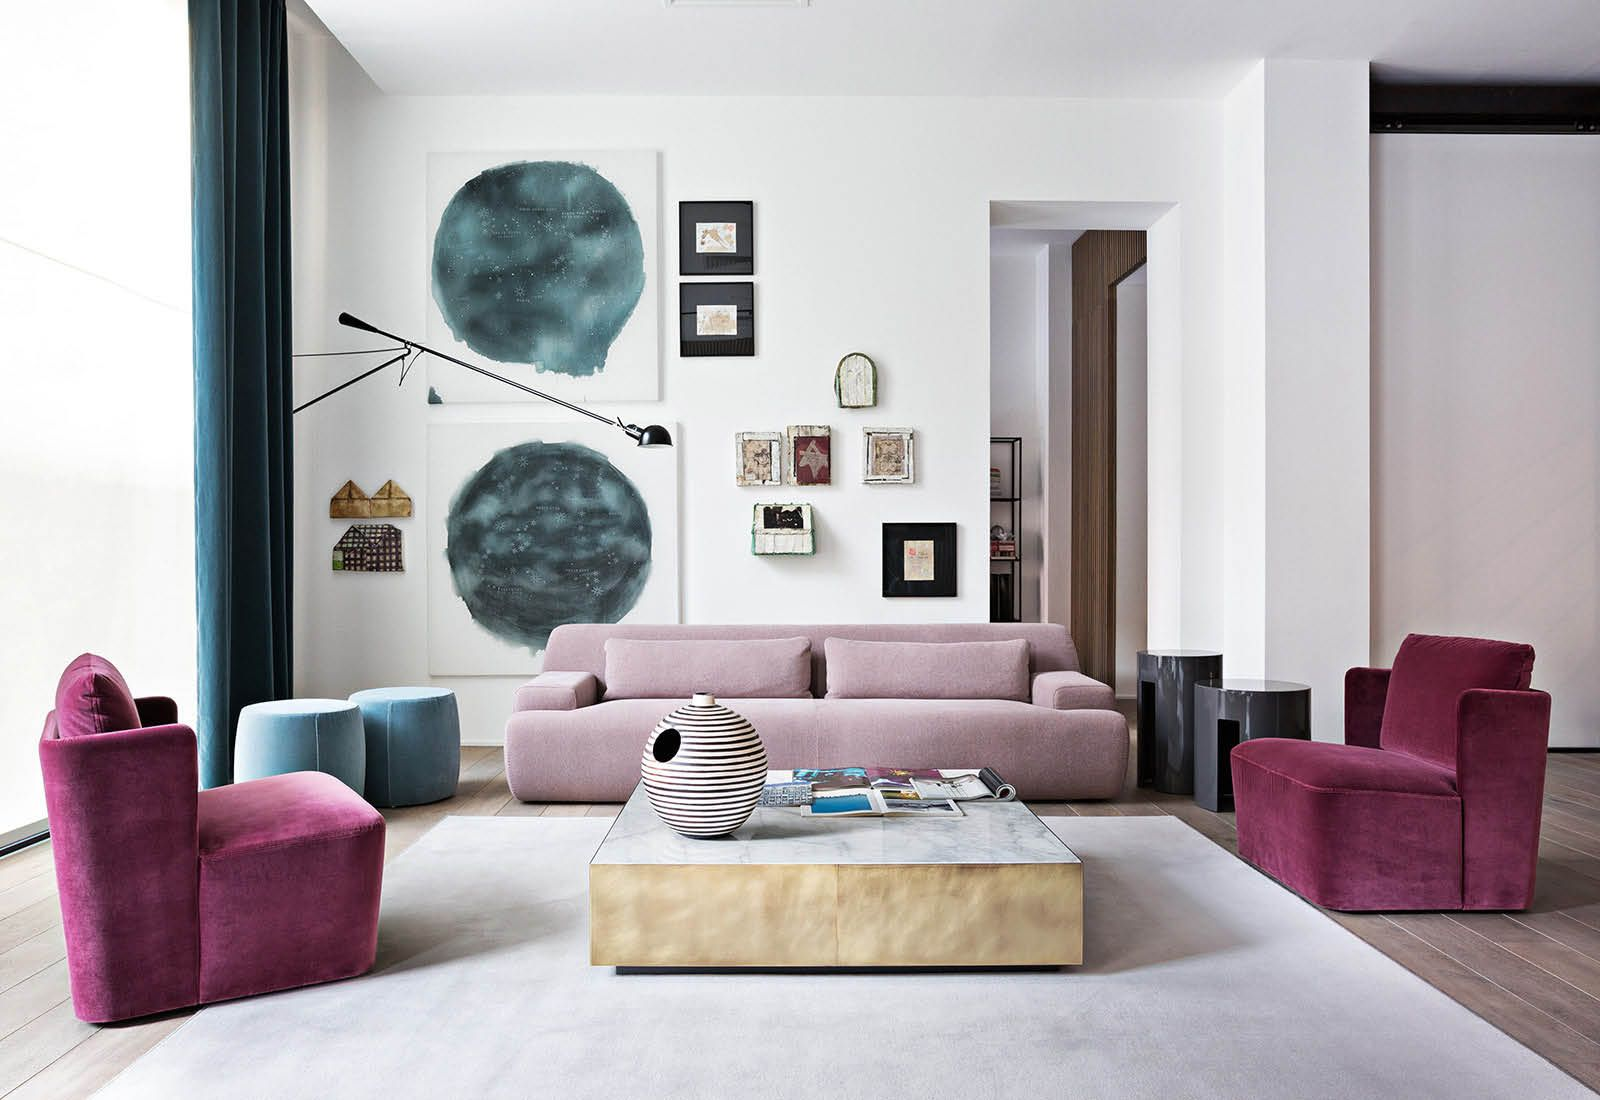 Neue wohnzimmer innenarchitektur meridiani living interiorsinteriordesign  color inspiration